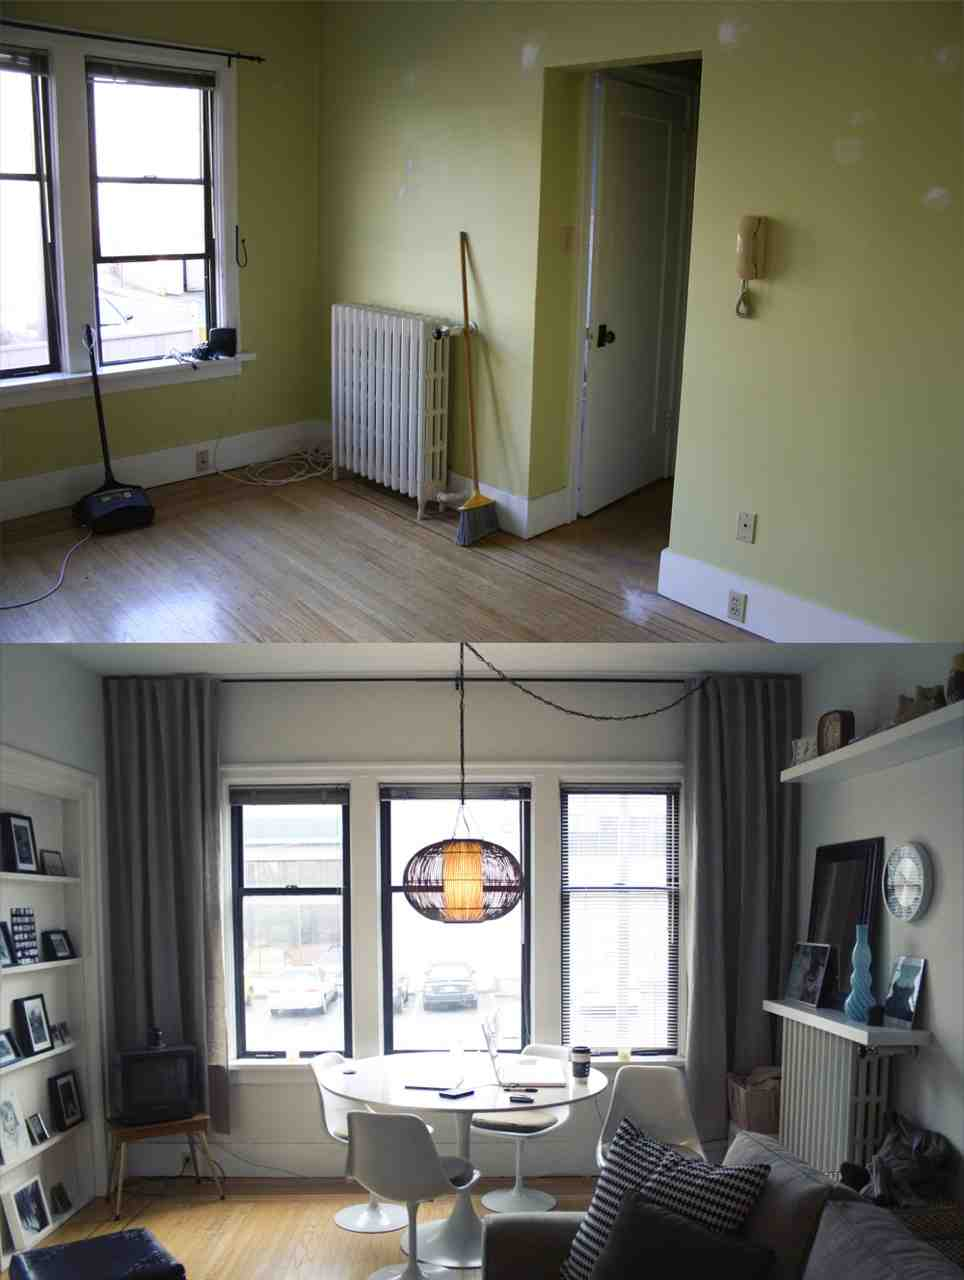 I love decorating and home decor, taking on projects, and helping others do the same. Small Apartment Decorating Ideas on a Budget - Decor Ideas